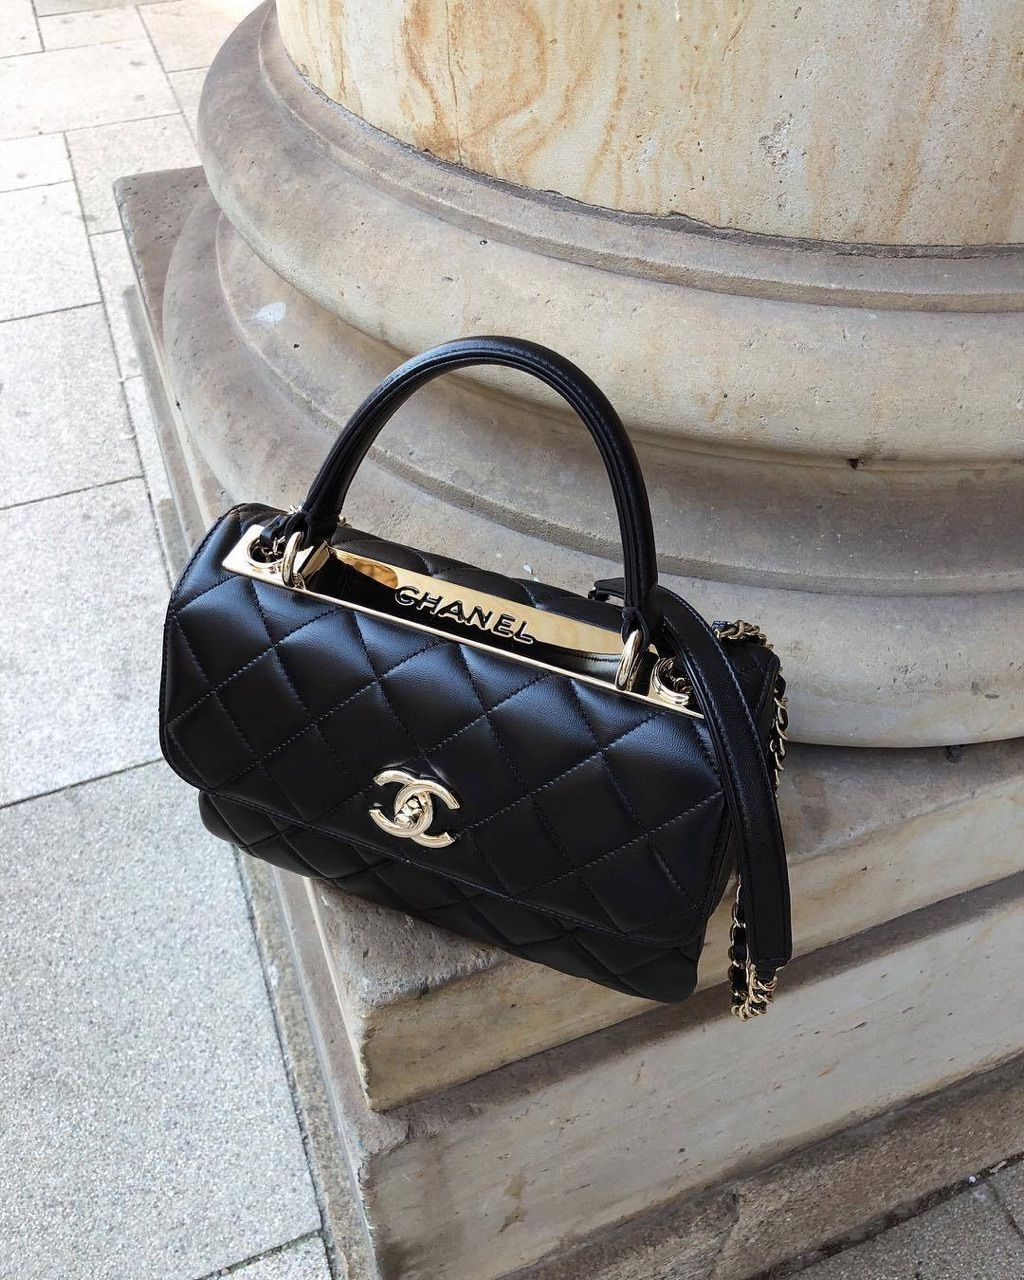 Chanel Bag Accessories Style Chanel Bag And Fashion Getthelook In 2020 With Images Chanel Handbags Trendy Purses Chanel Bag